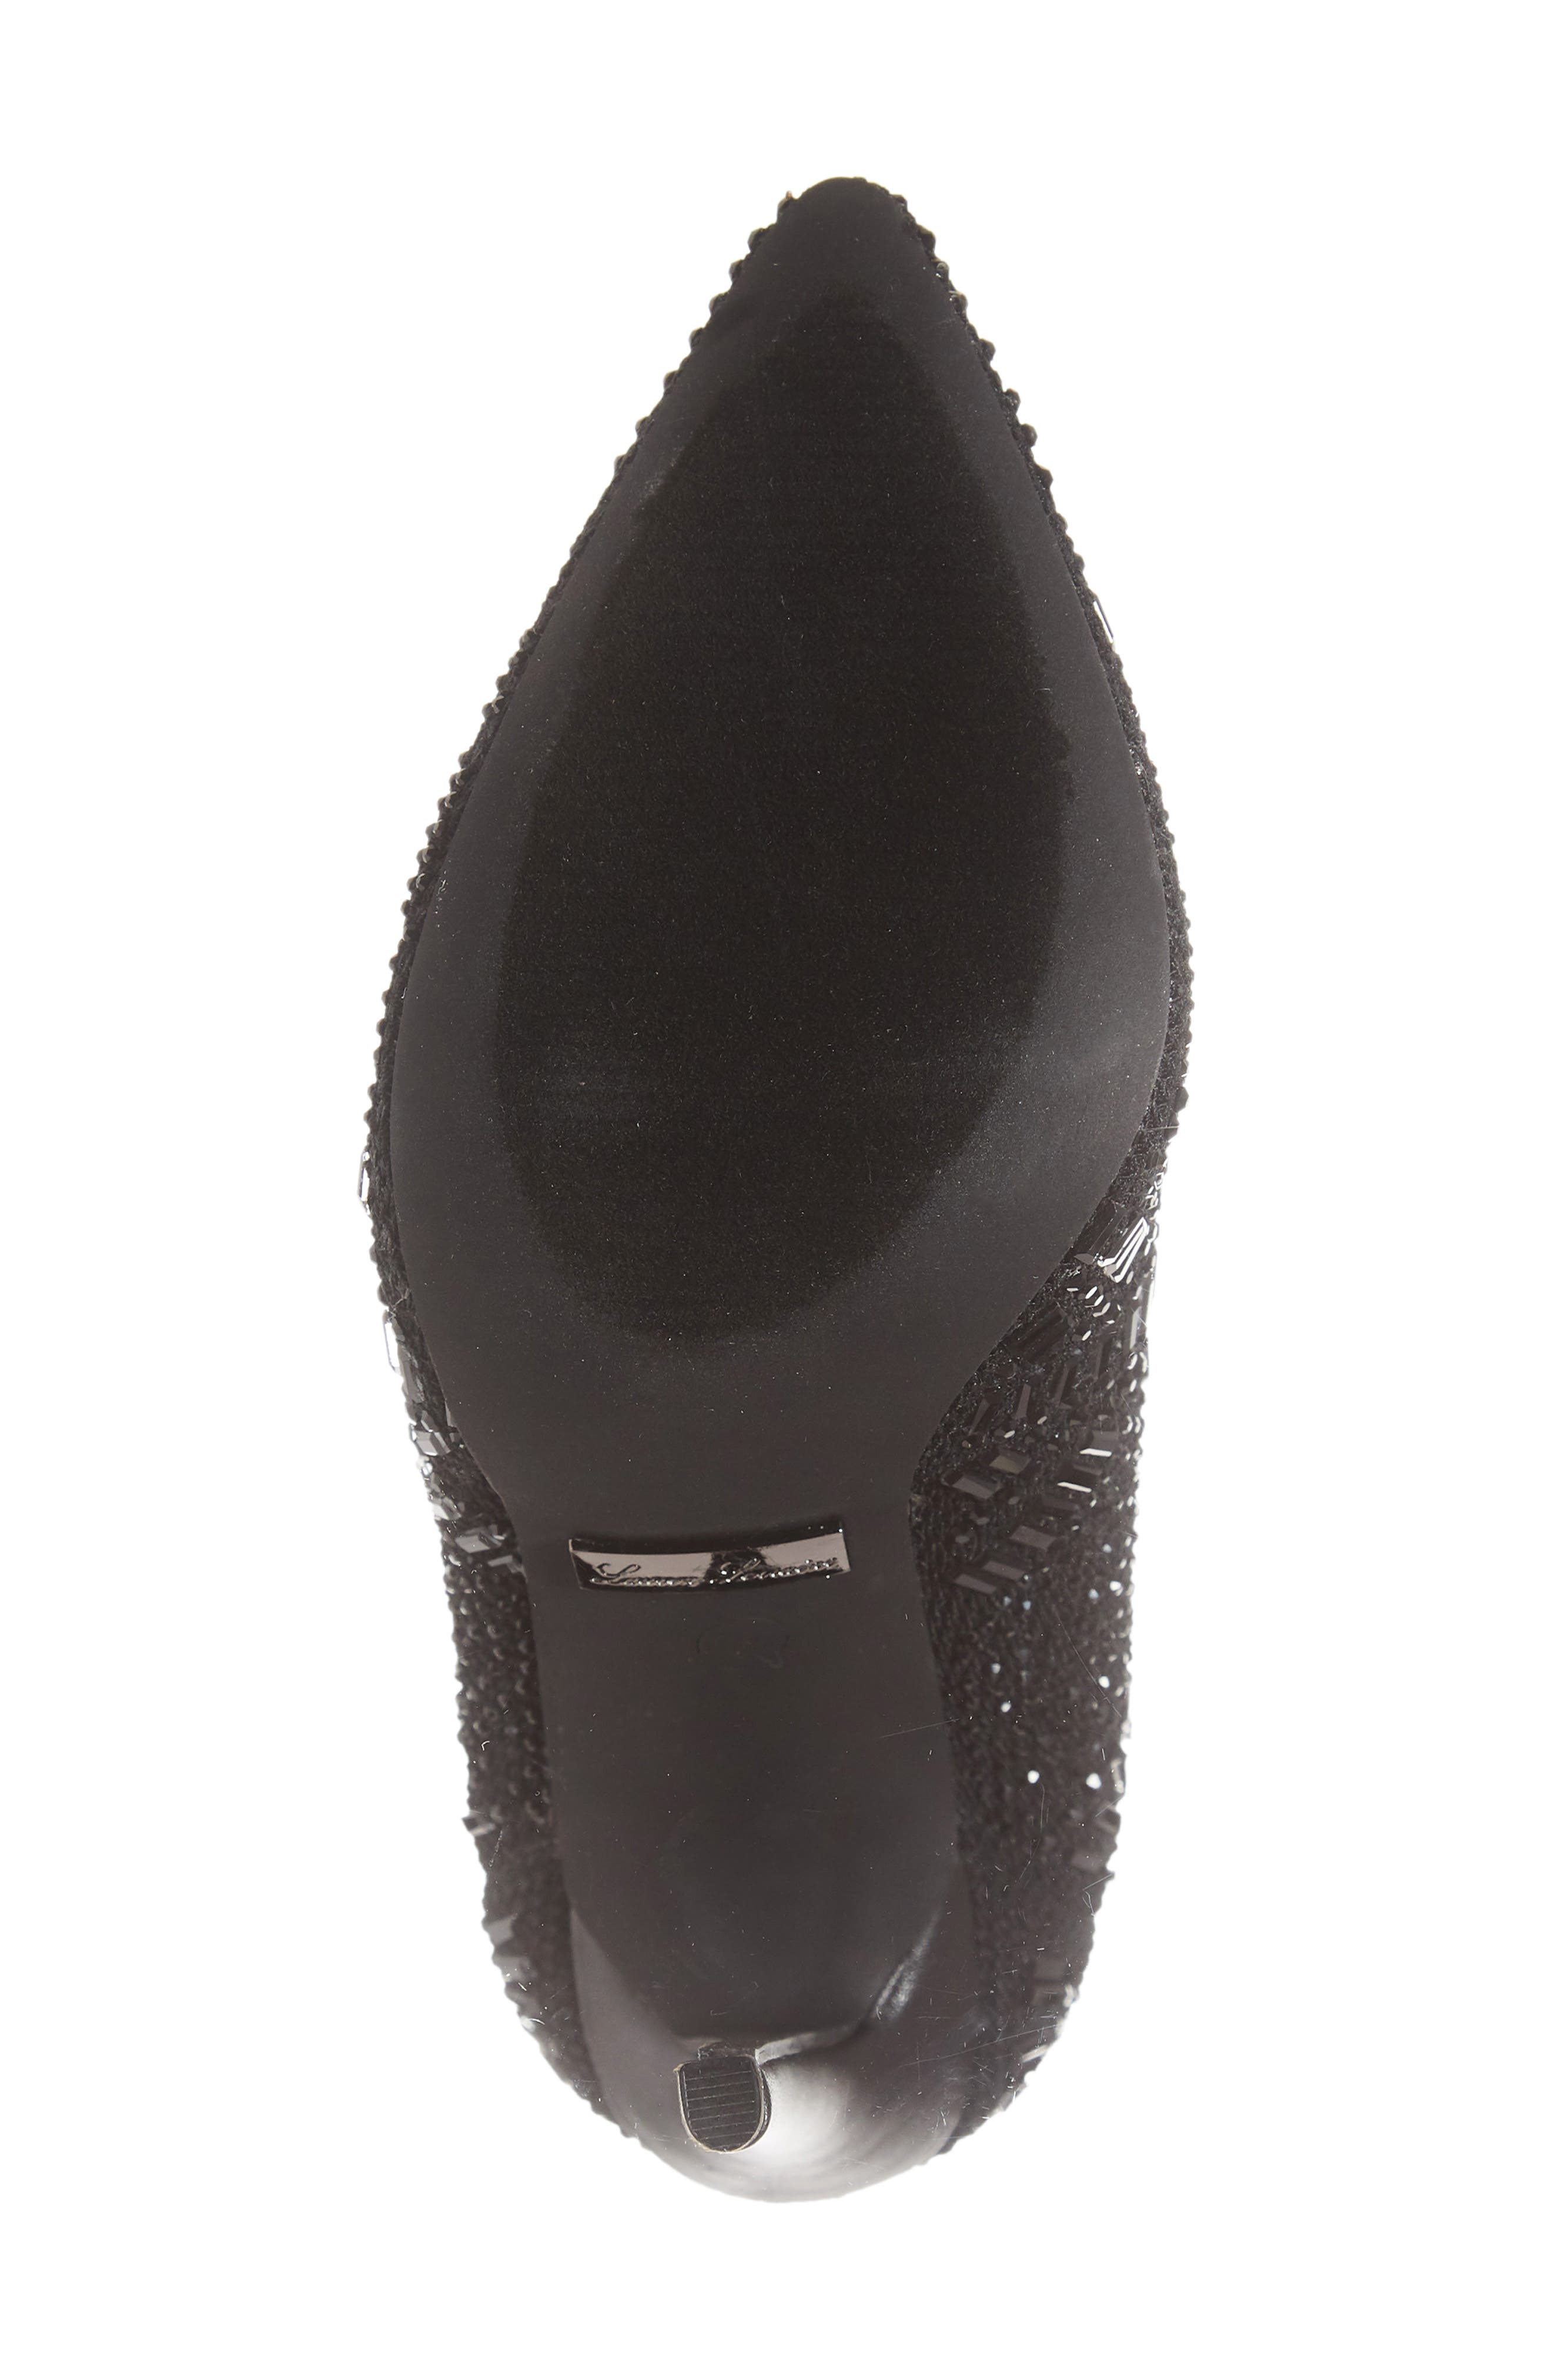 LAUREN LORRAINE, Sarah Crystal Embellished Bootie, Alternate thumbnail 6, color, BLACK FABRIC